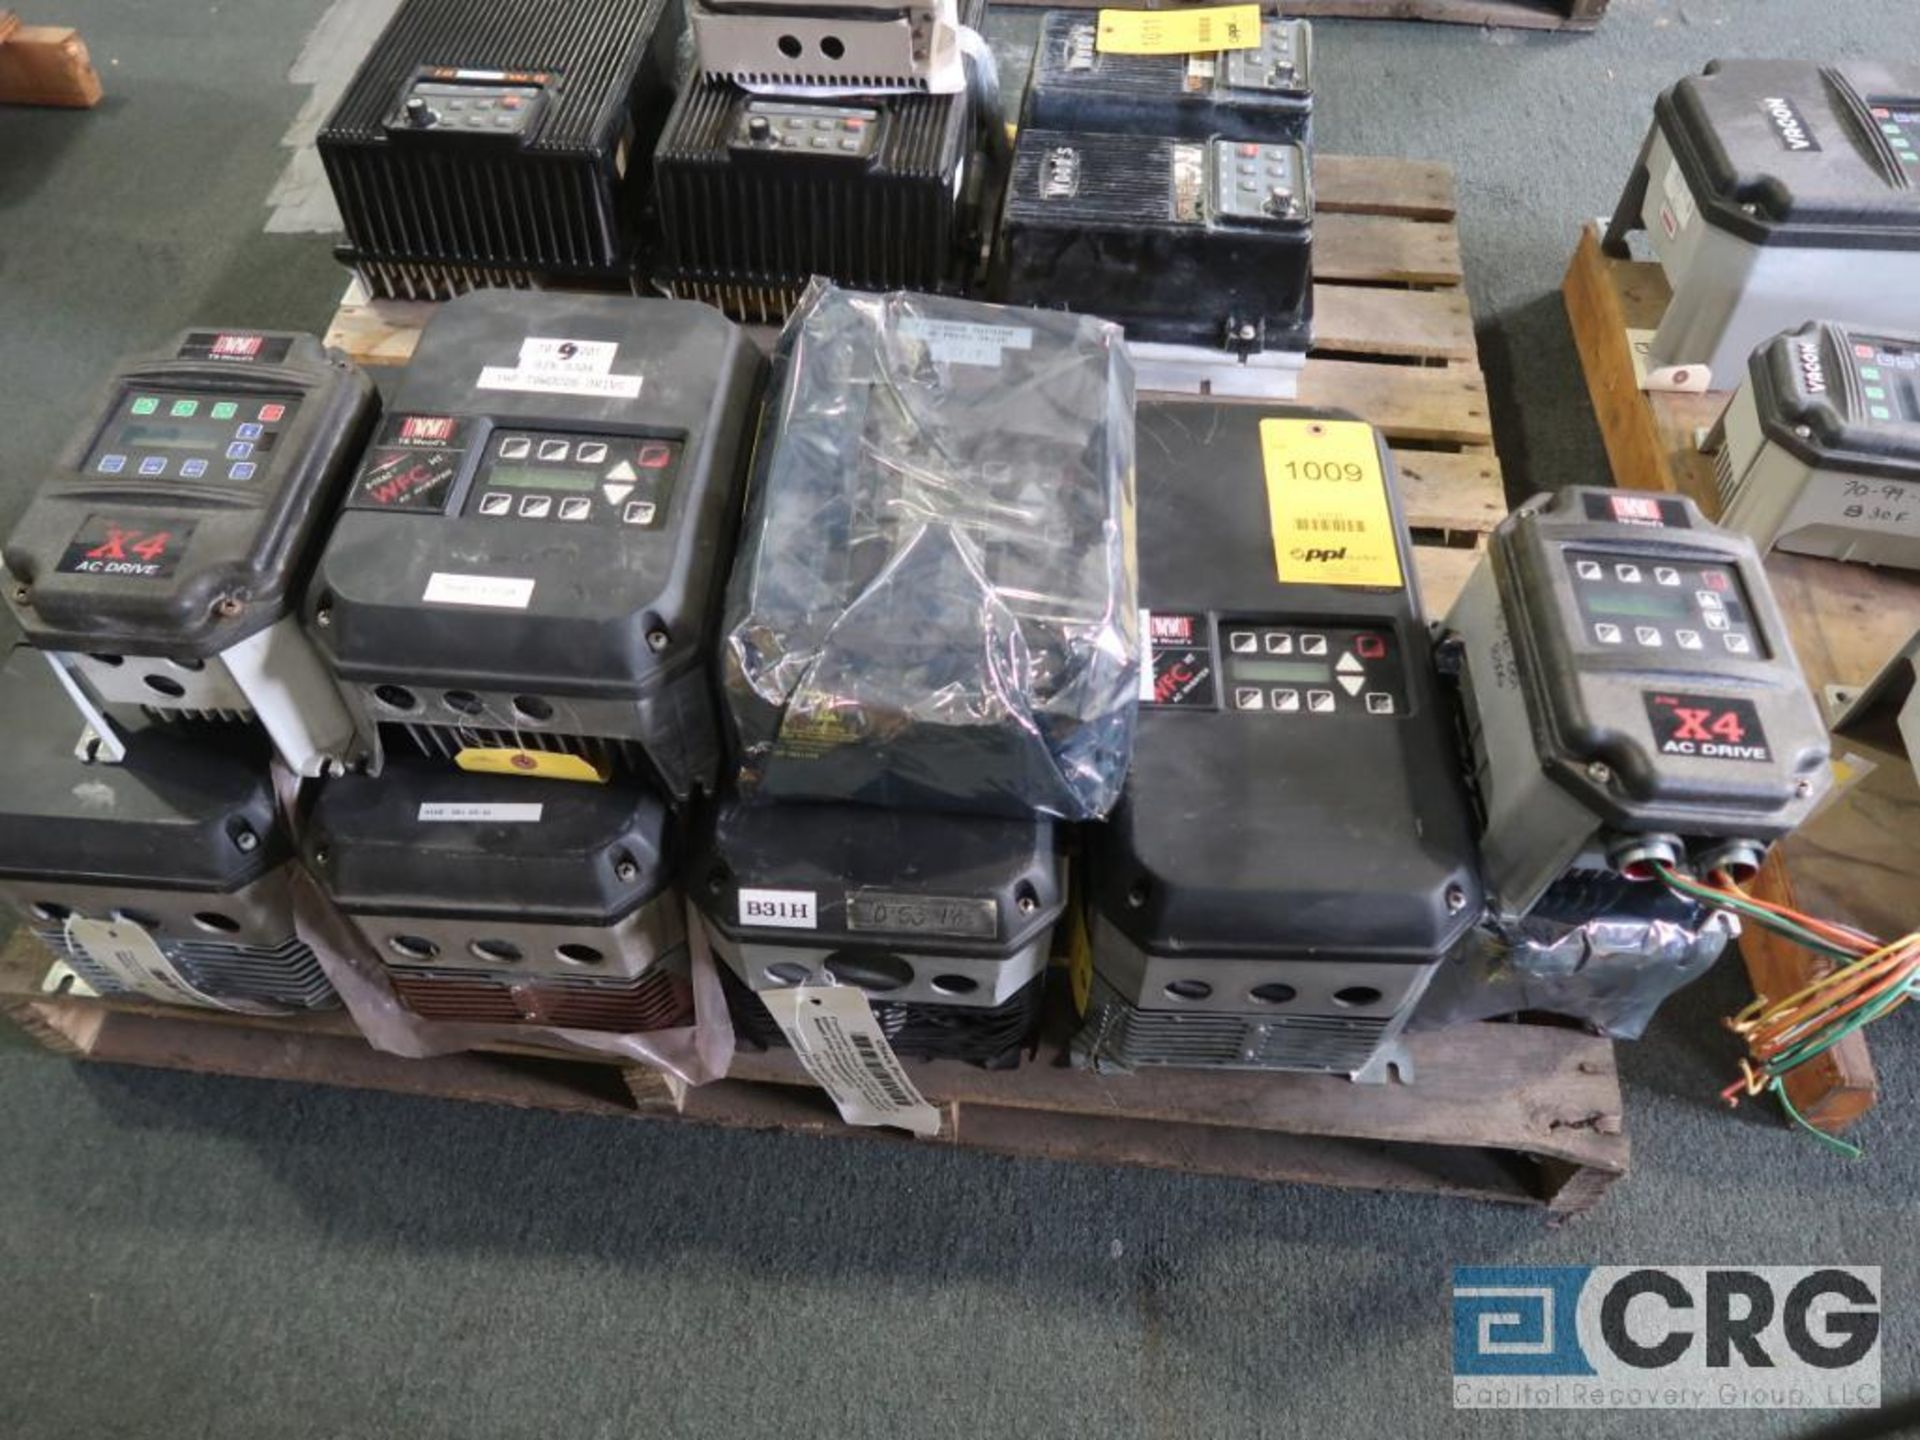 Lot of (9) TB Woods variable frequency drives, (4) 20 HP, (4) 1 HP, and (1) 1/2 HP (Finish